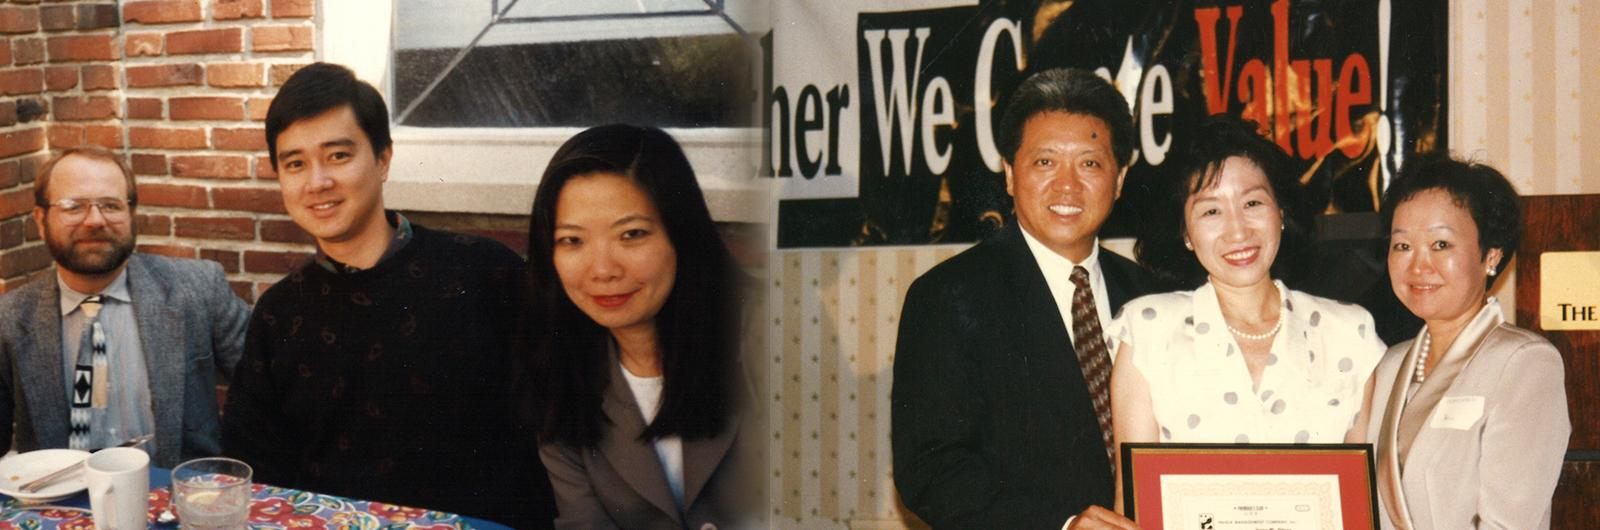 Irene Cherng and Stanley Liu